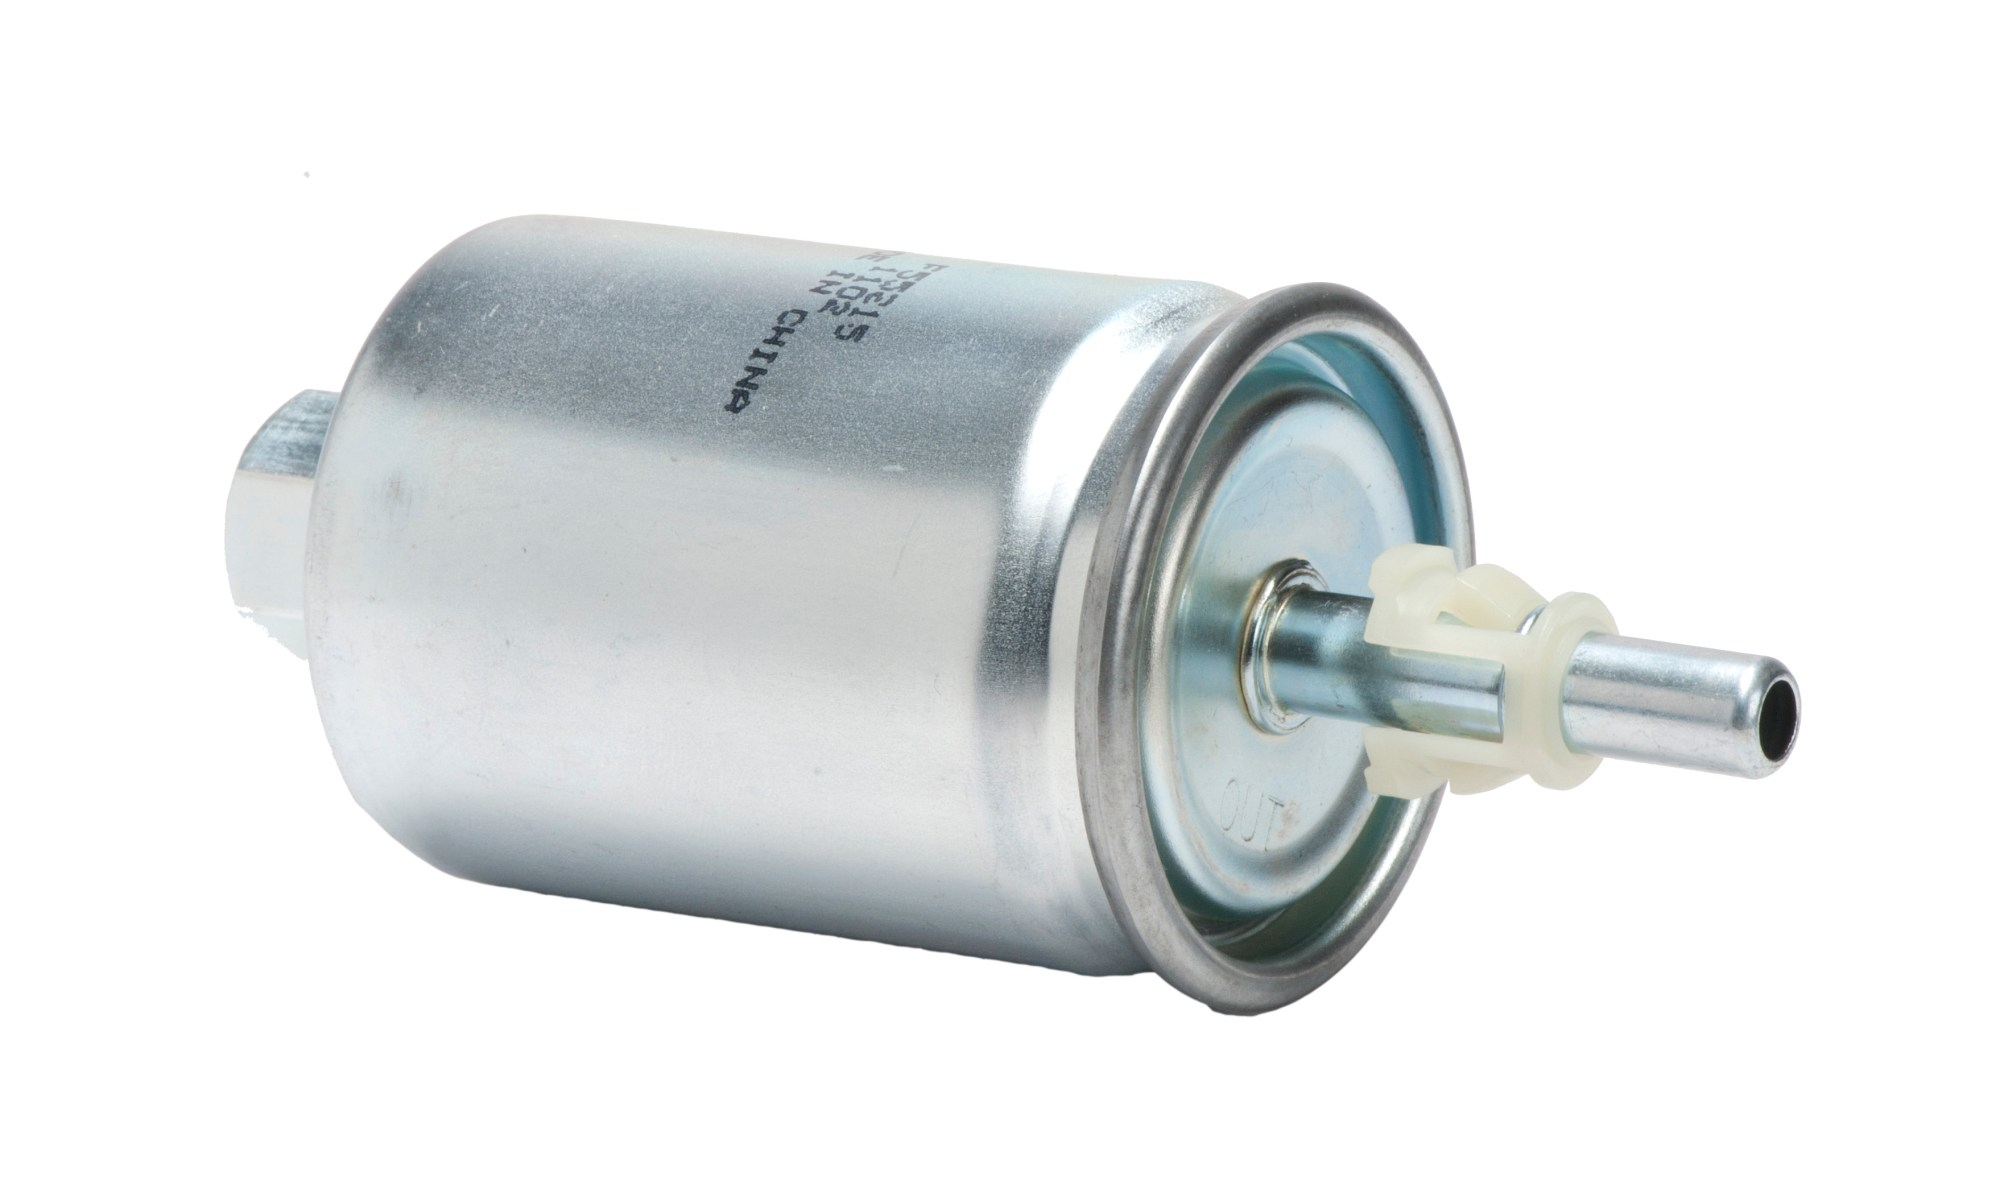 hight resolution of ram 1500 fuel filter location